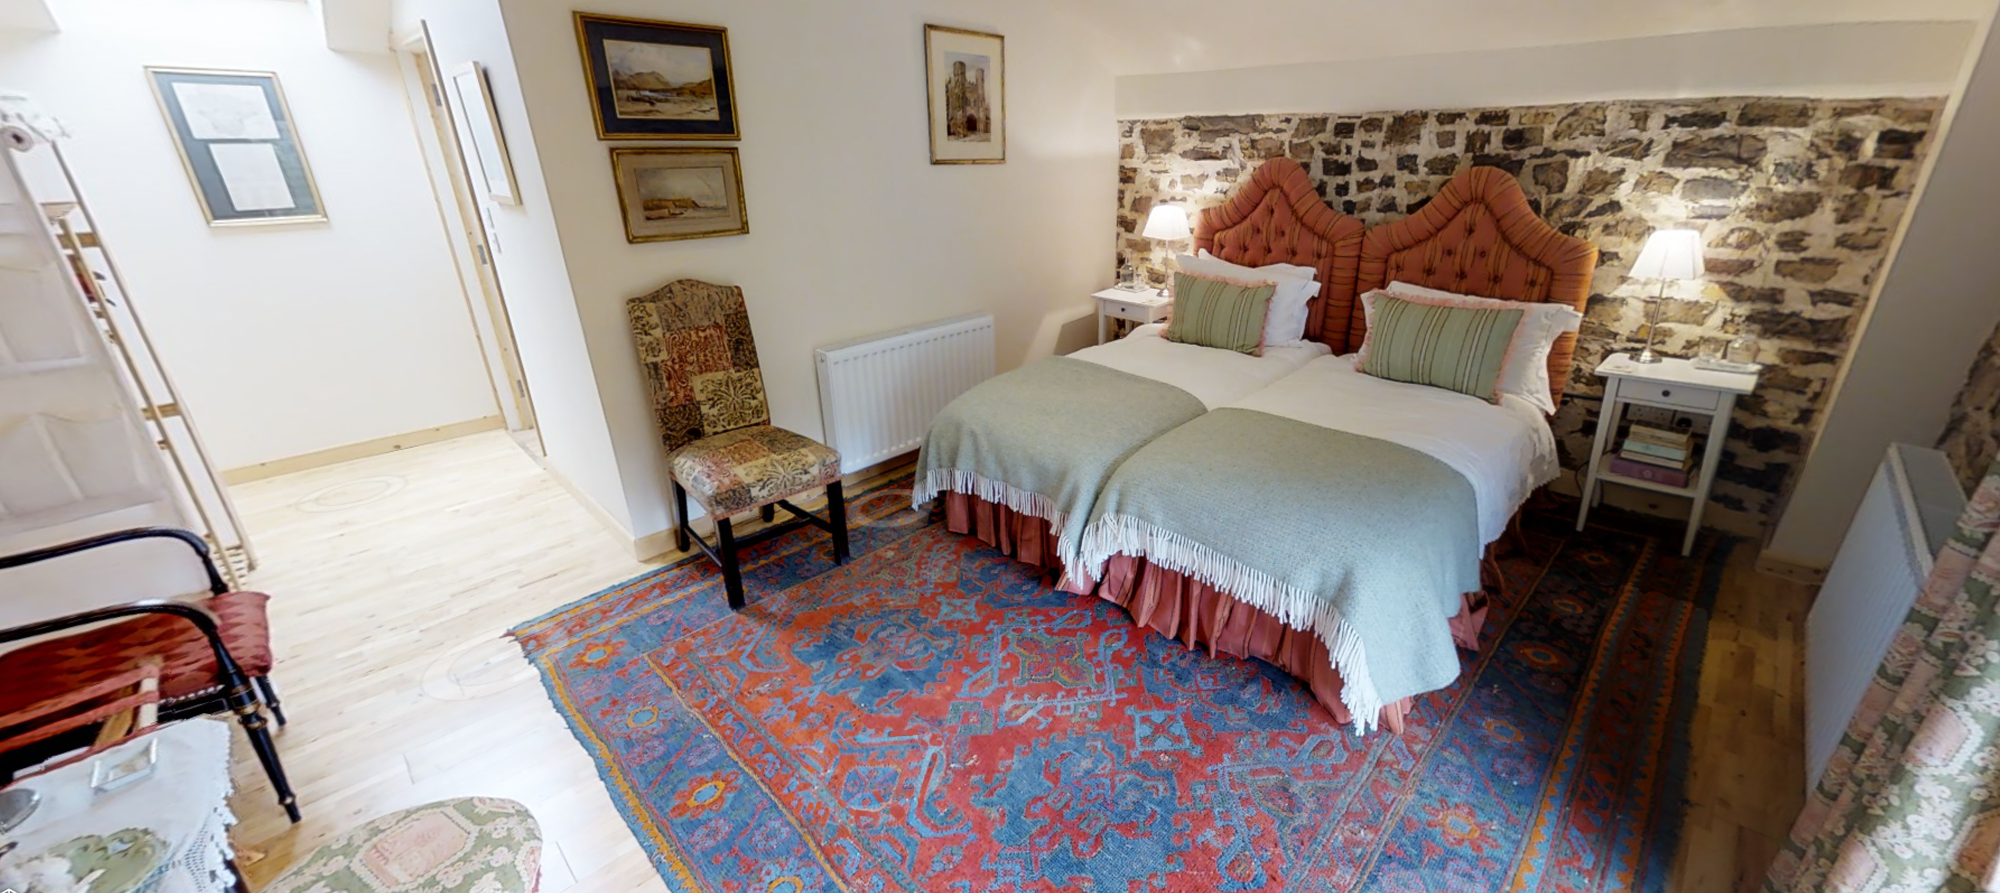 The Old Farmhouse Bed And Breakfast Hollamoor Farm North Devon Bed And Breakfast B Andb